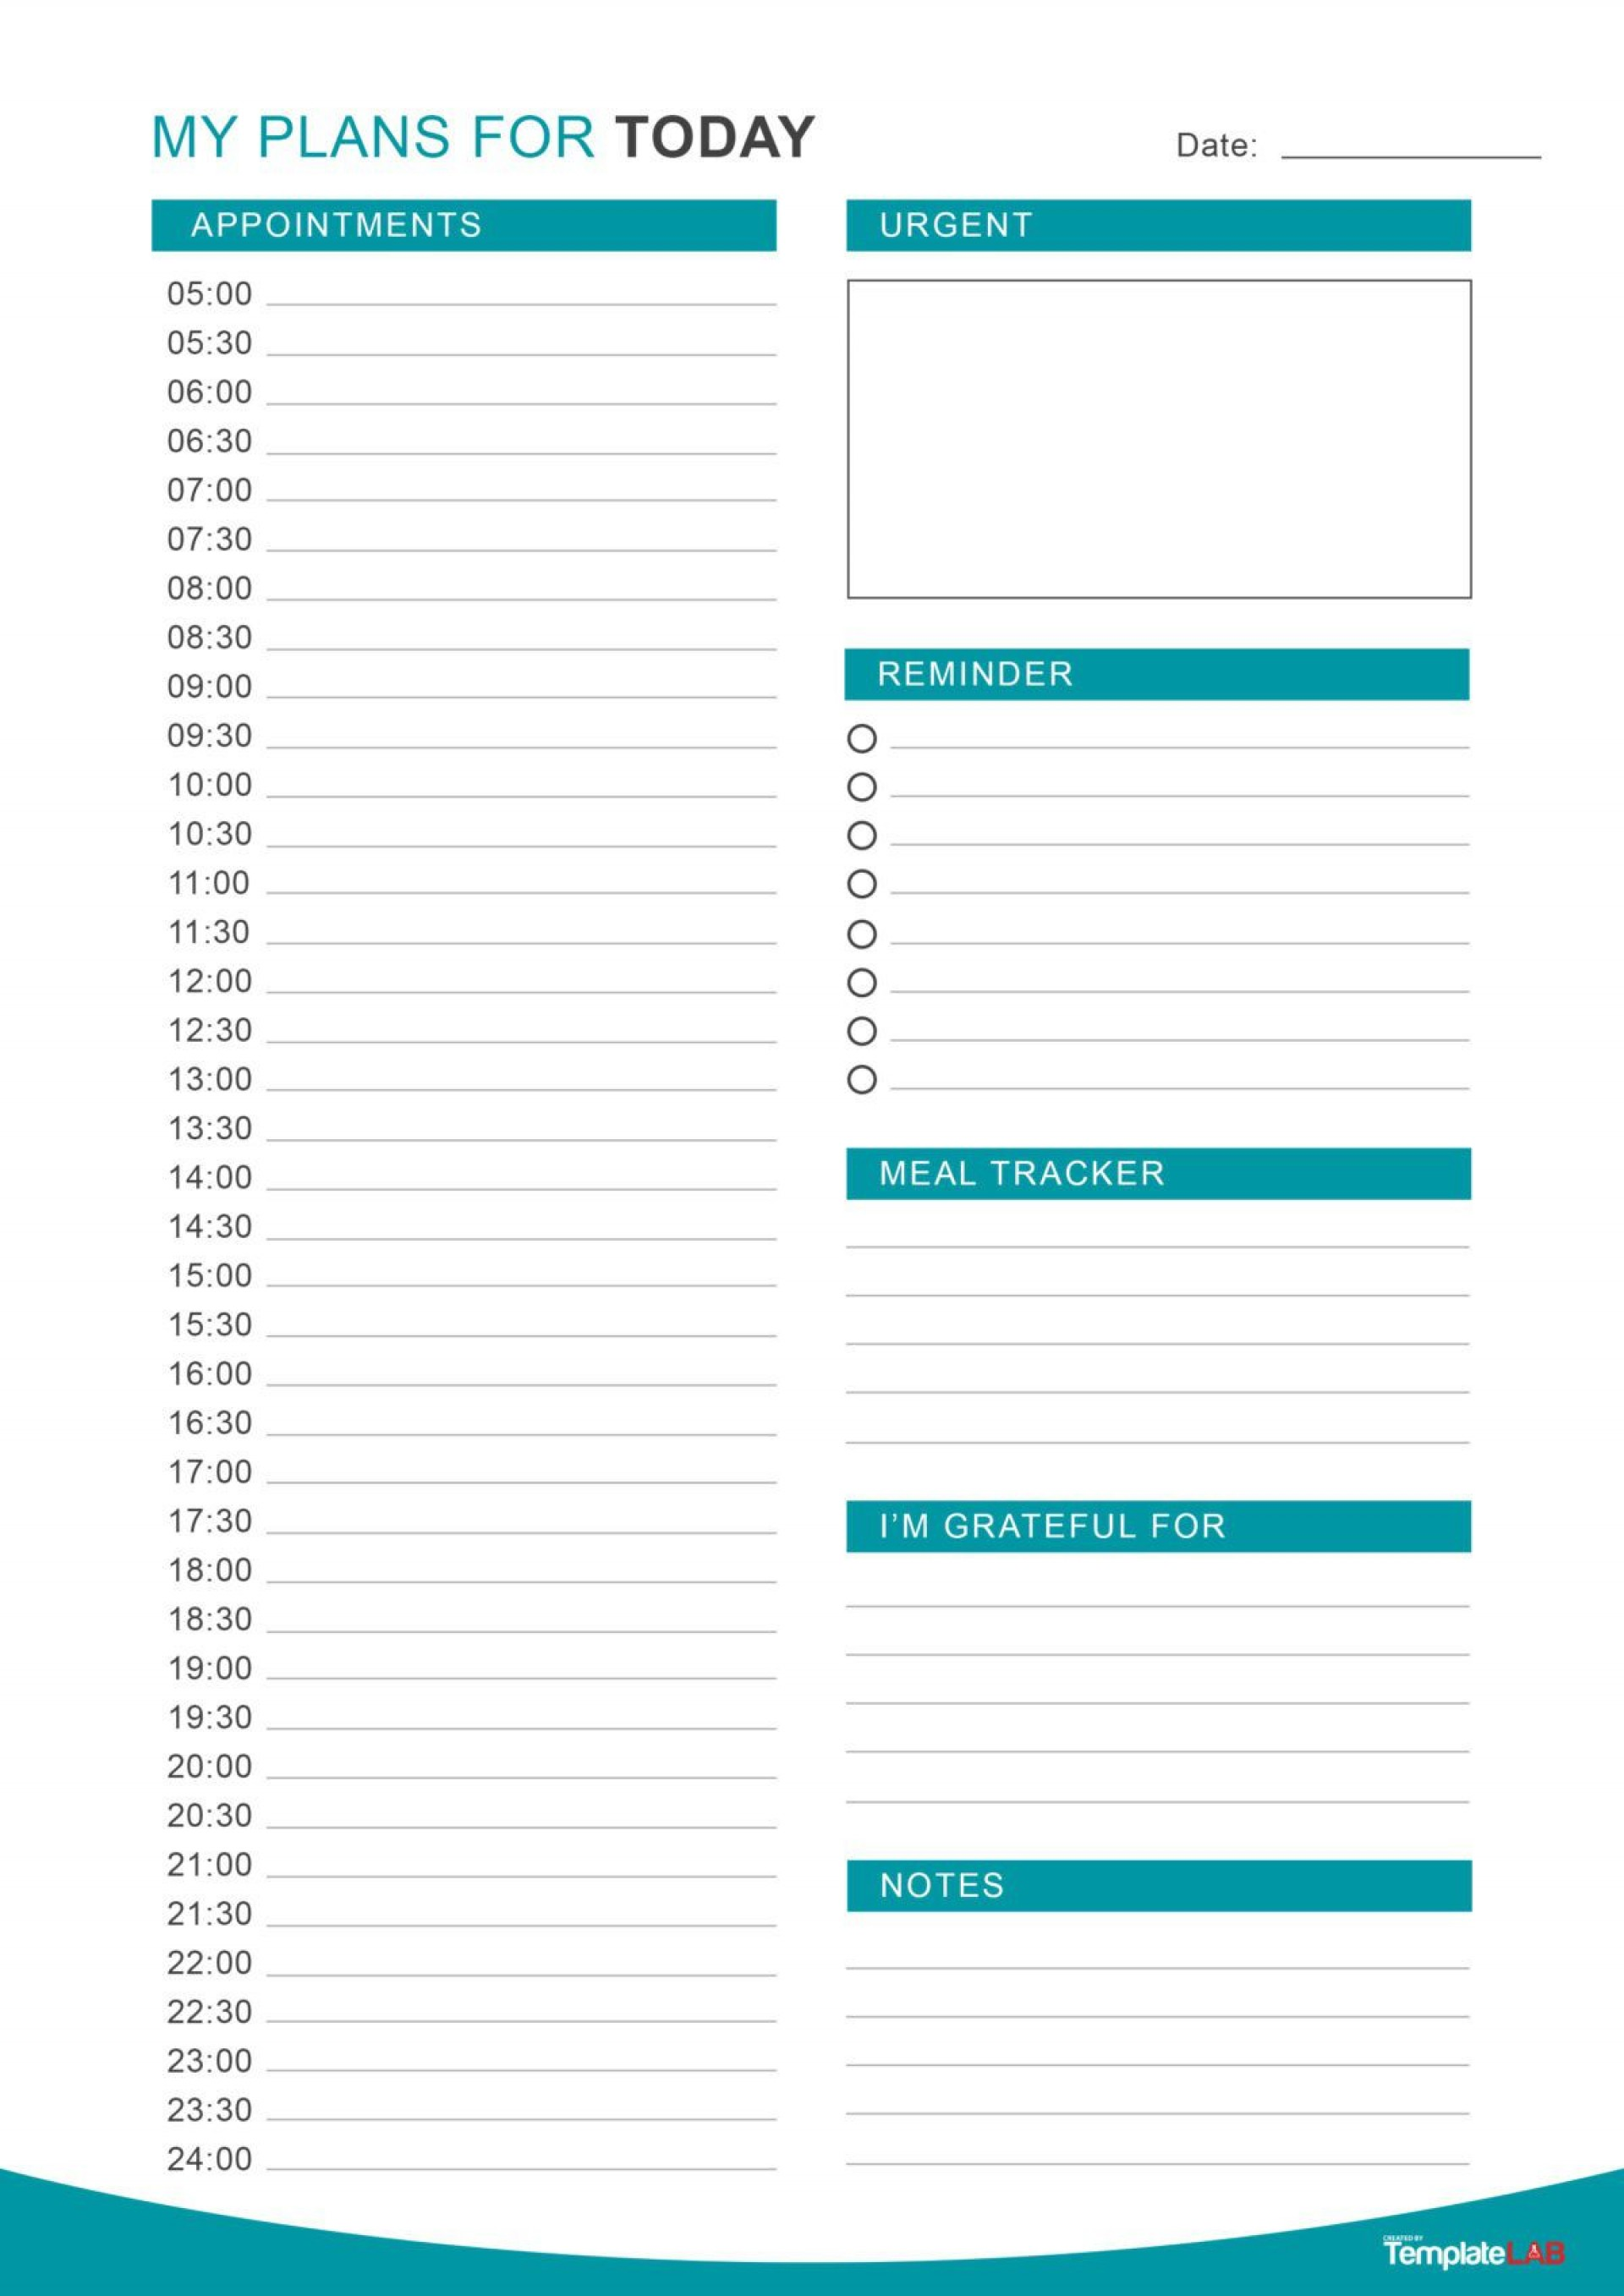 006 Fascinating Daily Schedule Template Printable Picture 1920